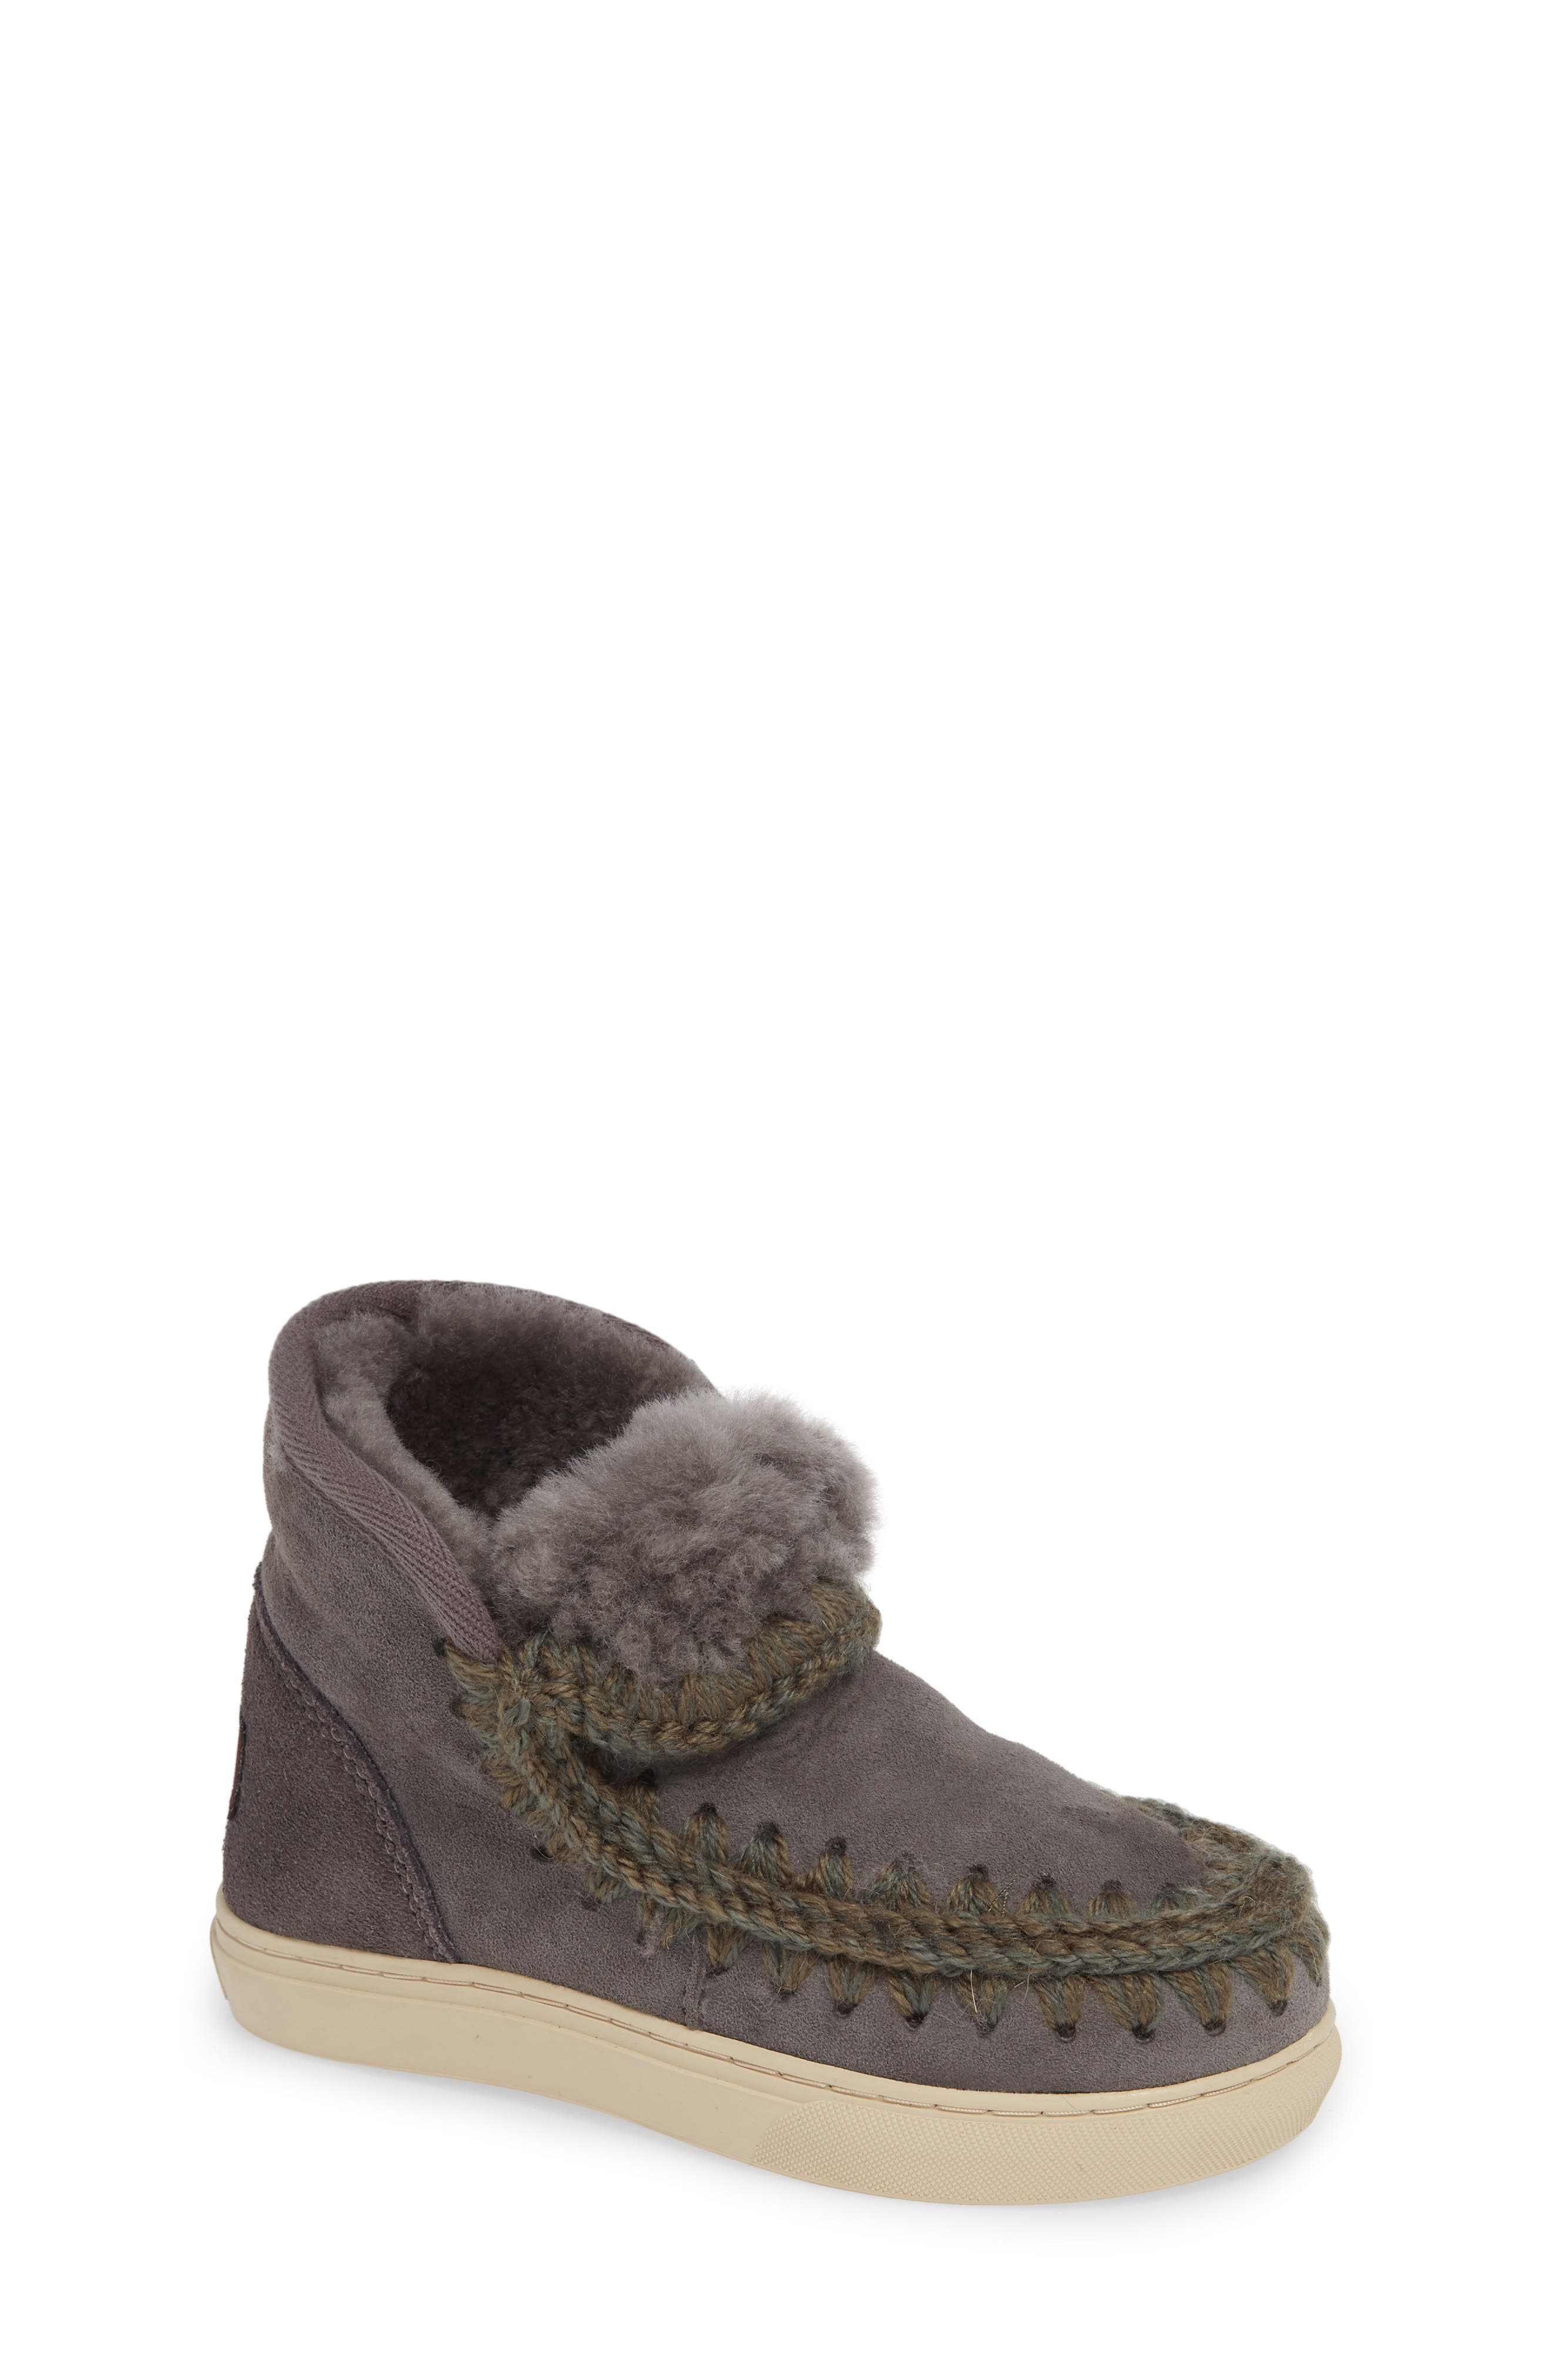 MOU Embellished Genuine Shearling Sneaker Boot, Main, color, IRON